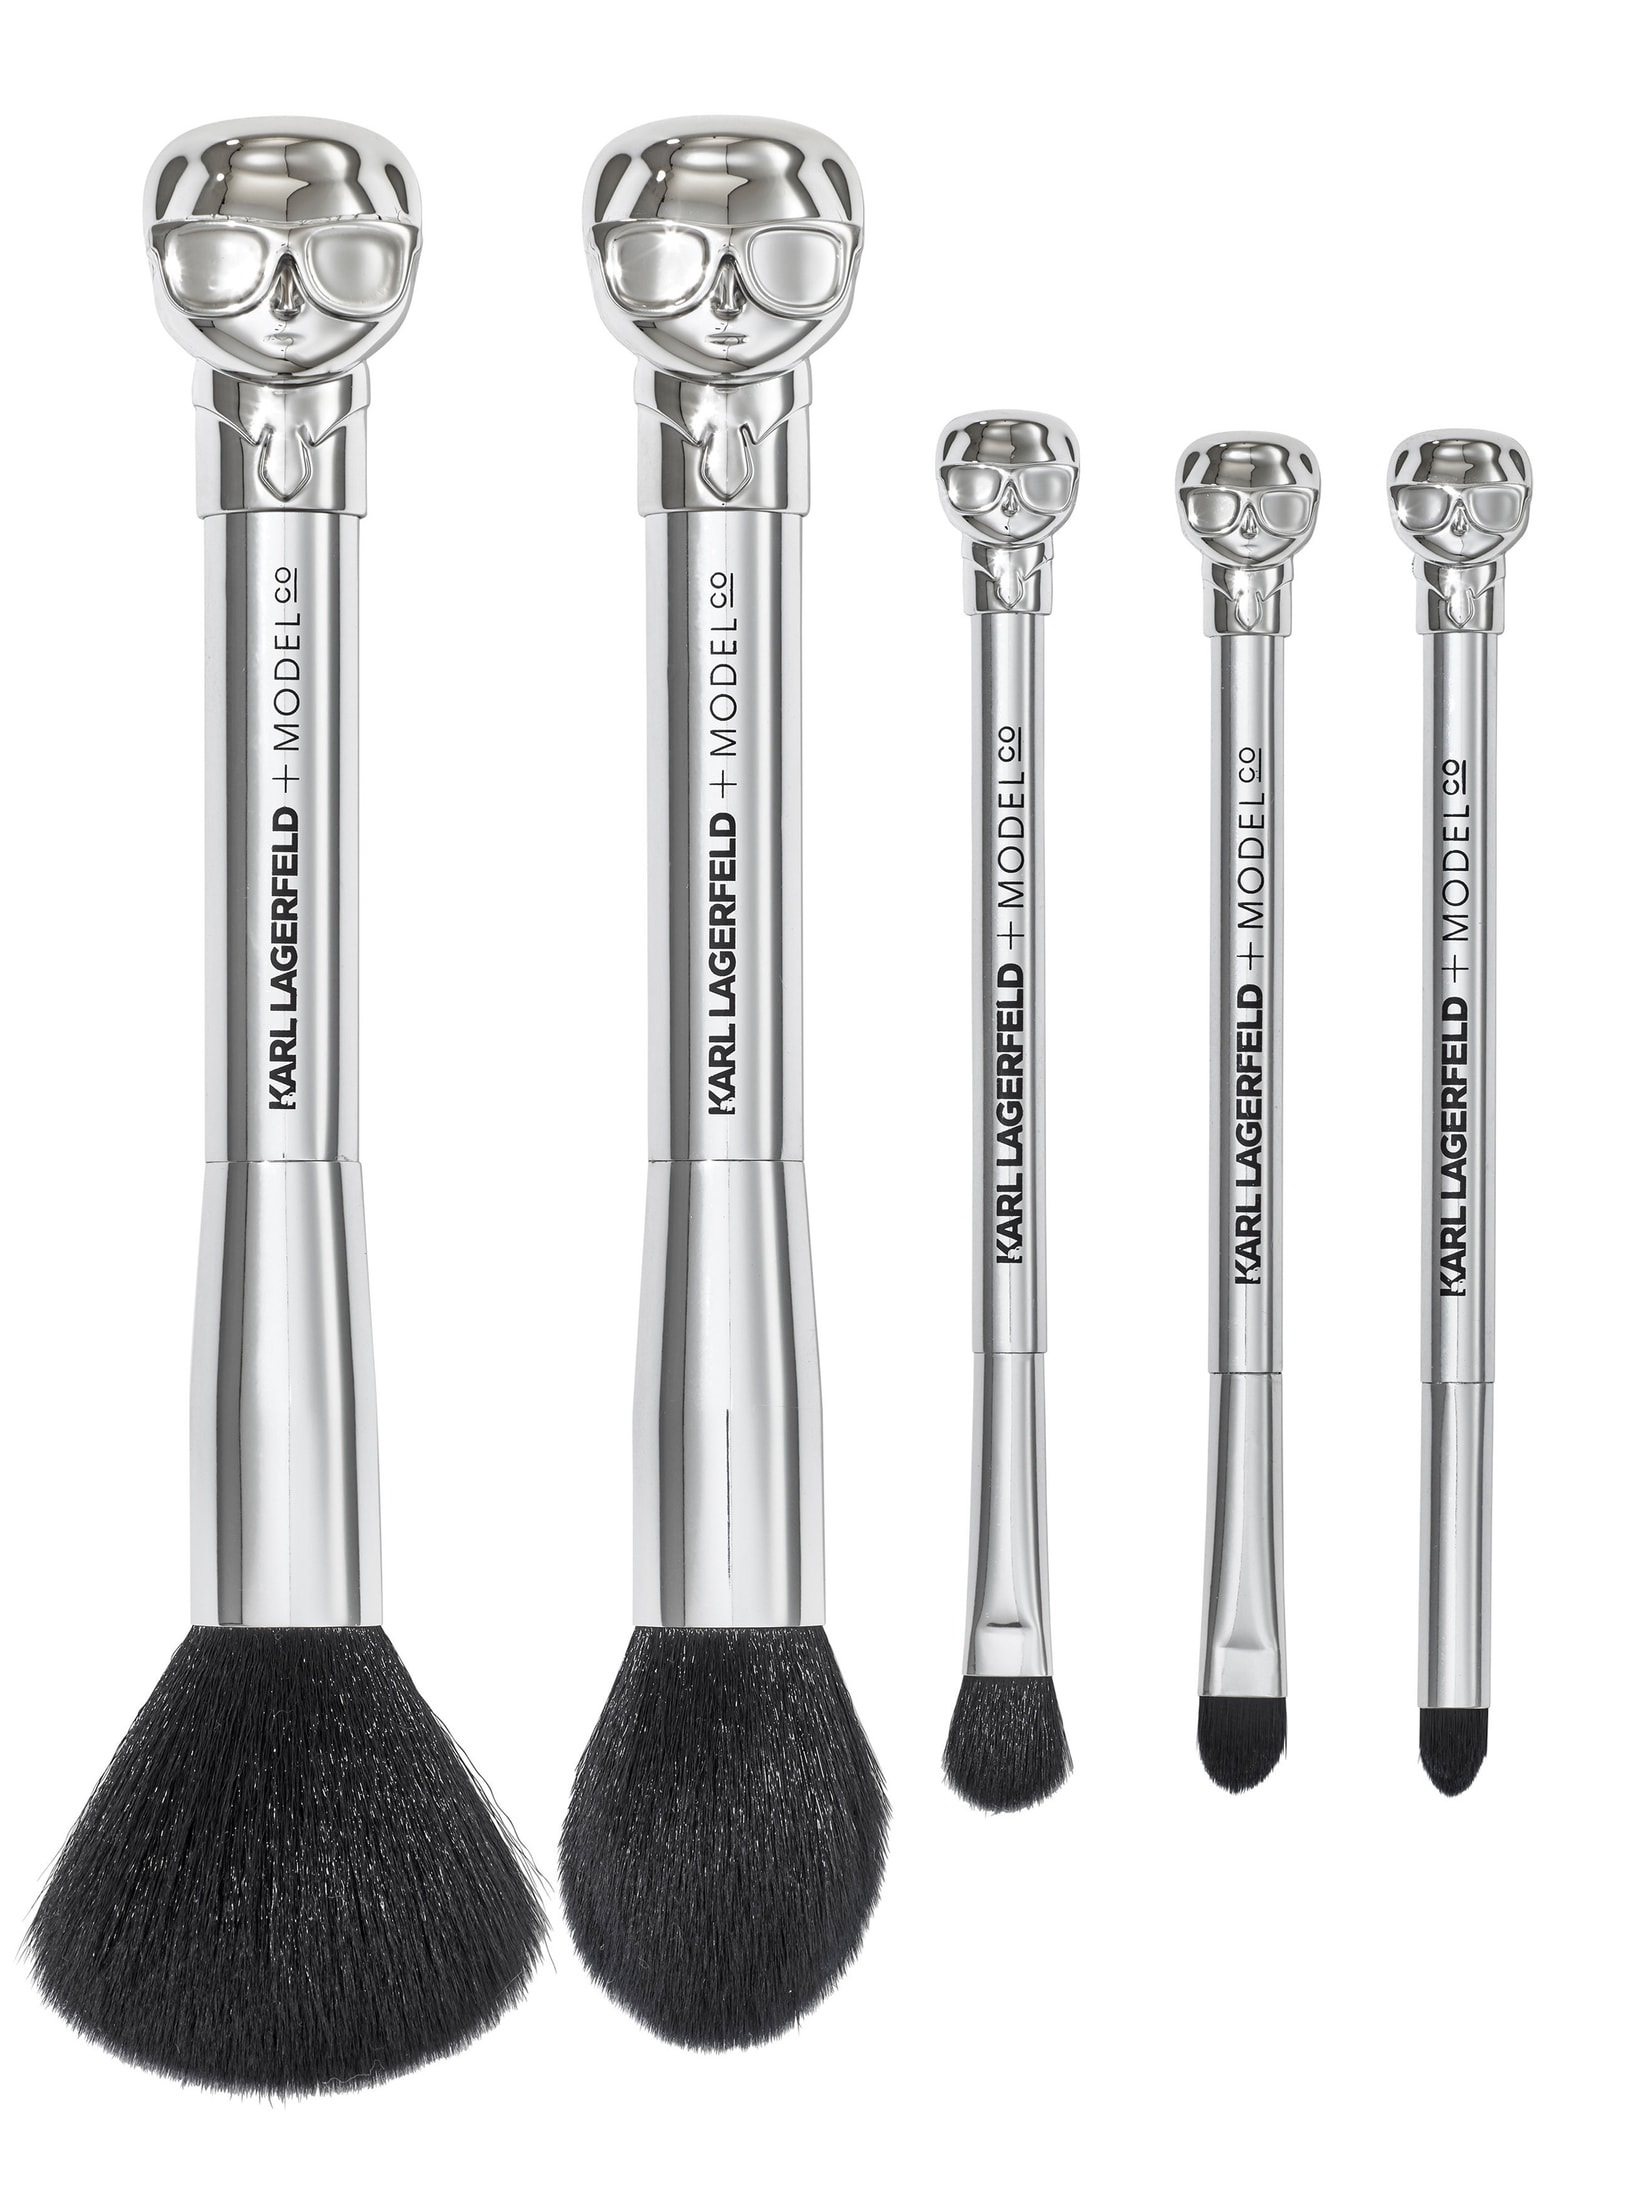 Karl Lagerfeld + ModelCo - Kiss Me Karl Collectable Karl Brush Collection.jpg